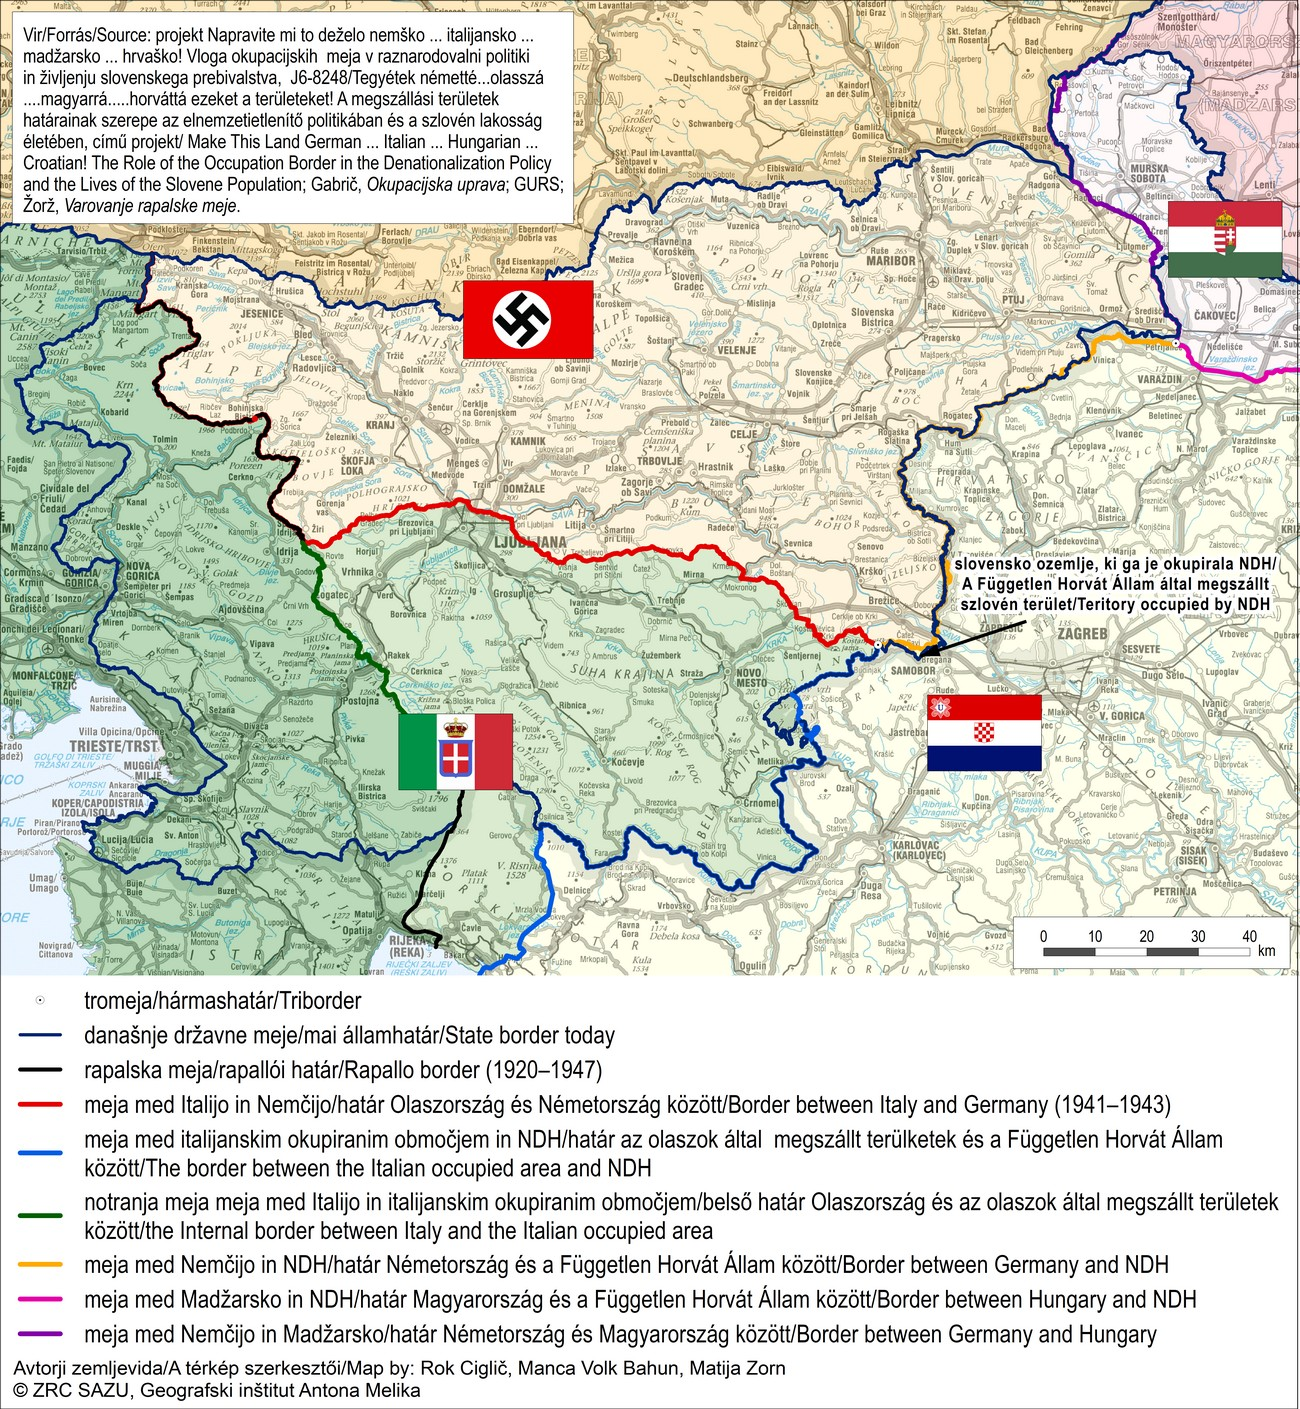 After occupation, Slovene territory was divided among the Germans, Italians, Hungarians and Croatians.